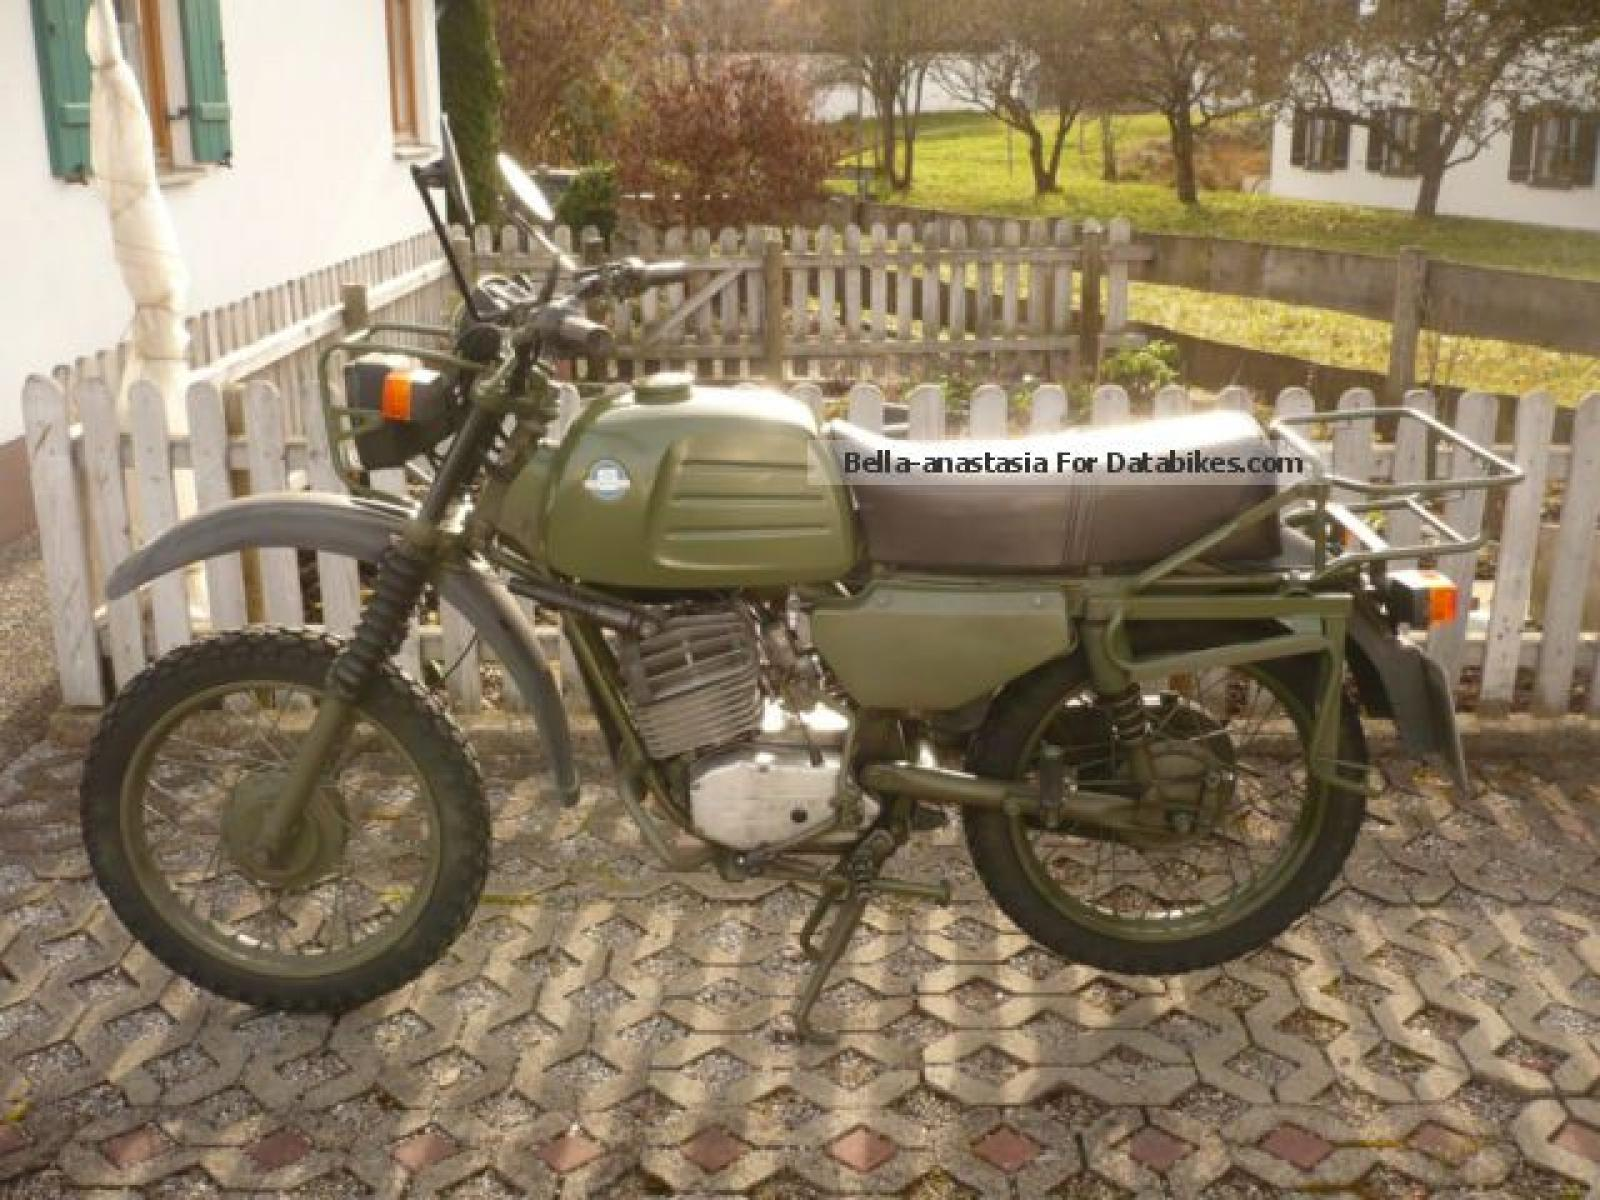 Hercules K 125 Military 1980 images #74144